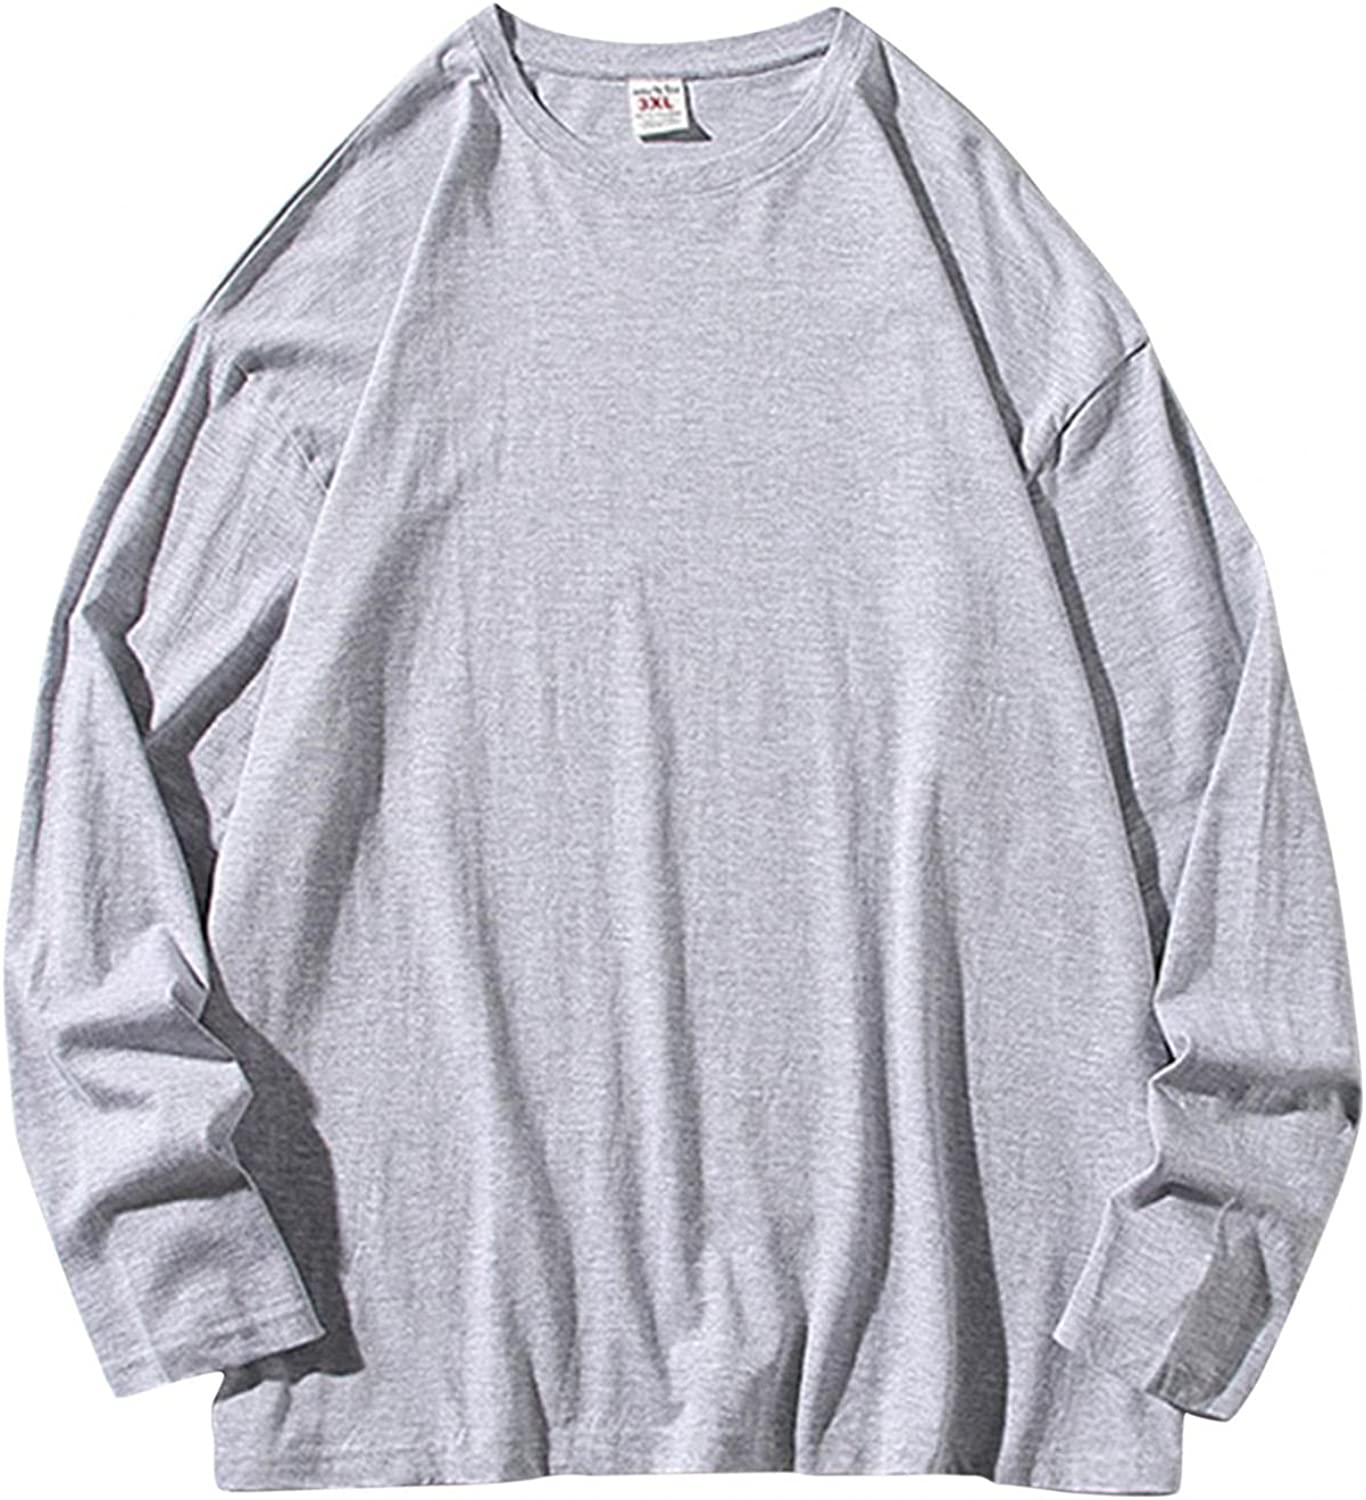 WUAI-Men Athletic Solid Workout Sweatshirt Crewneck Hipster Hip Hop Lightweight Plain Pullover Sweater Thermal Tunic Tops